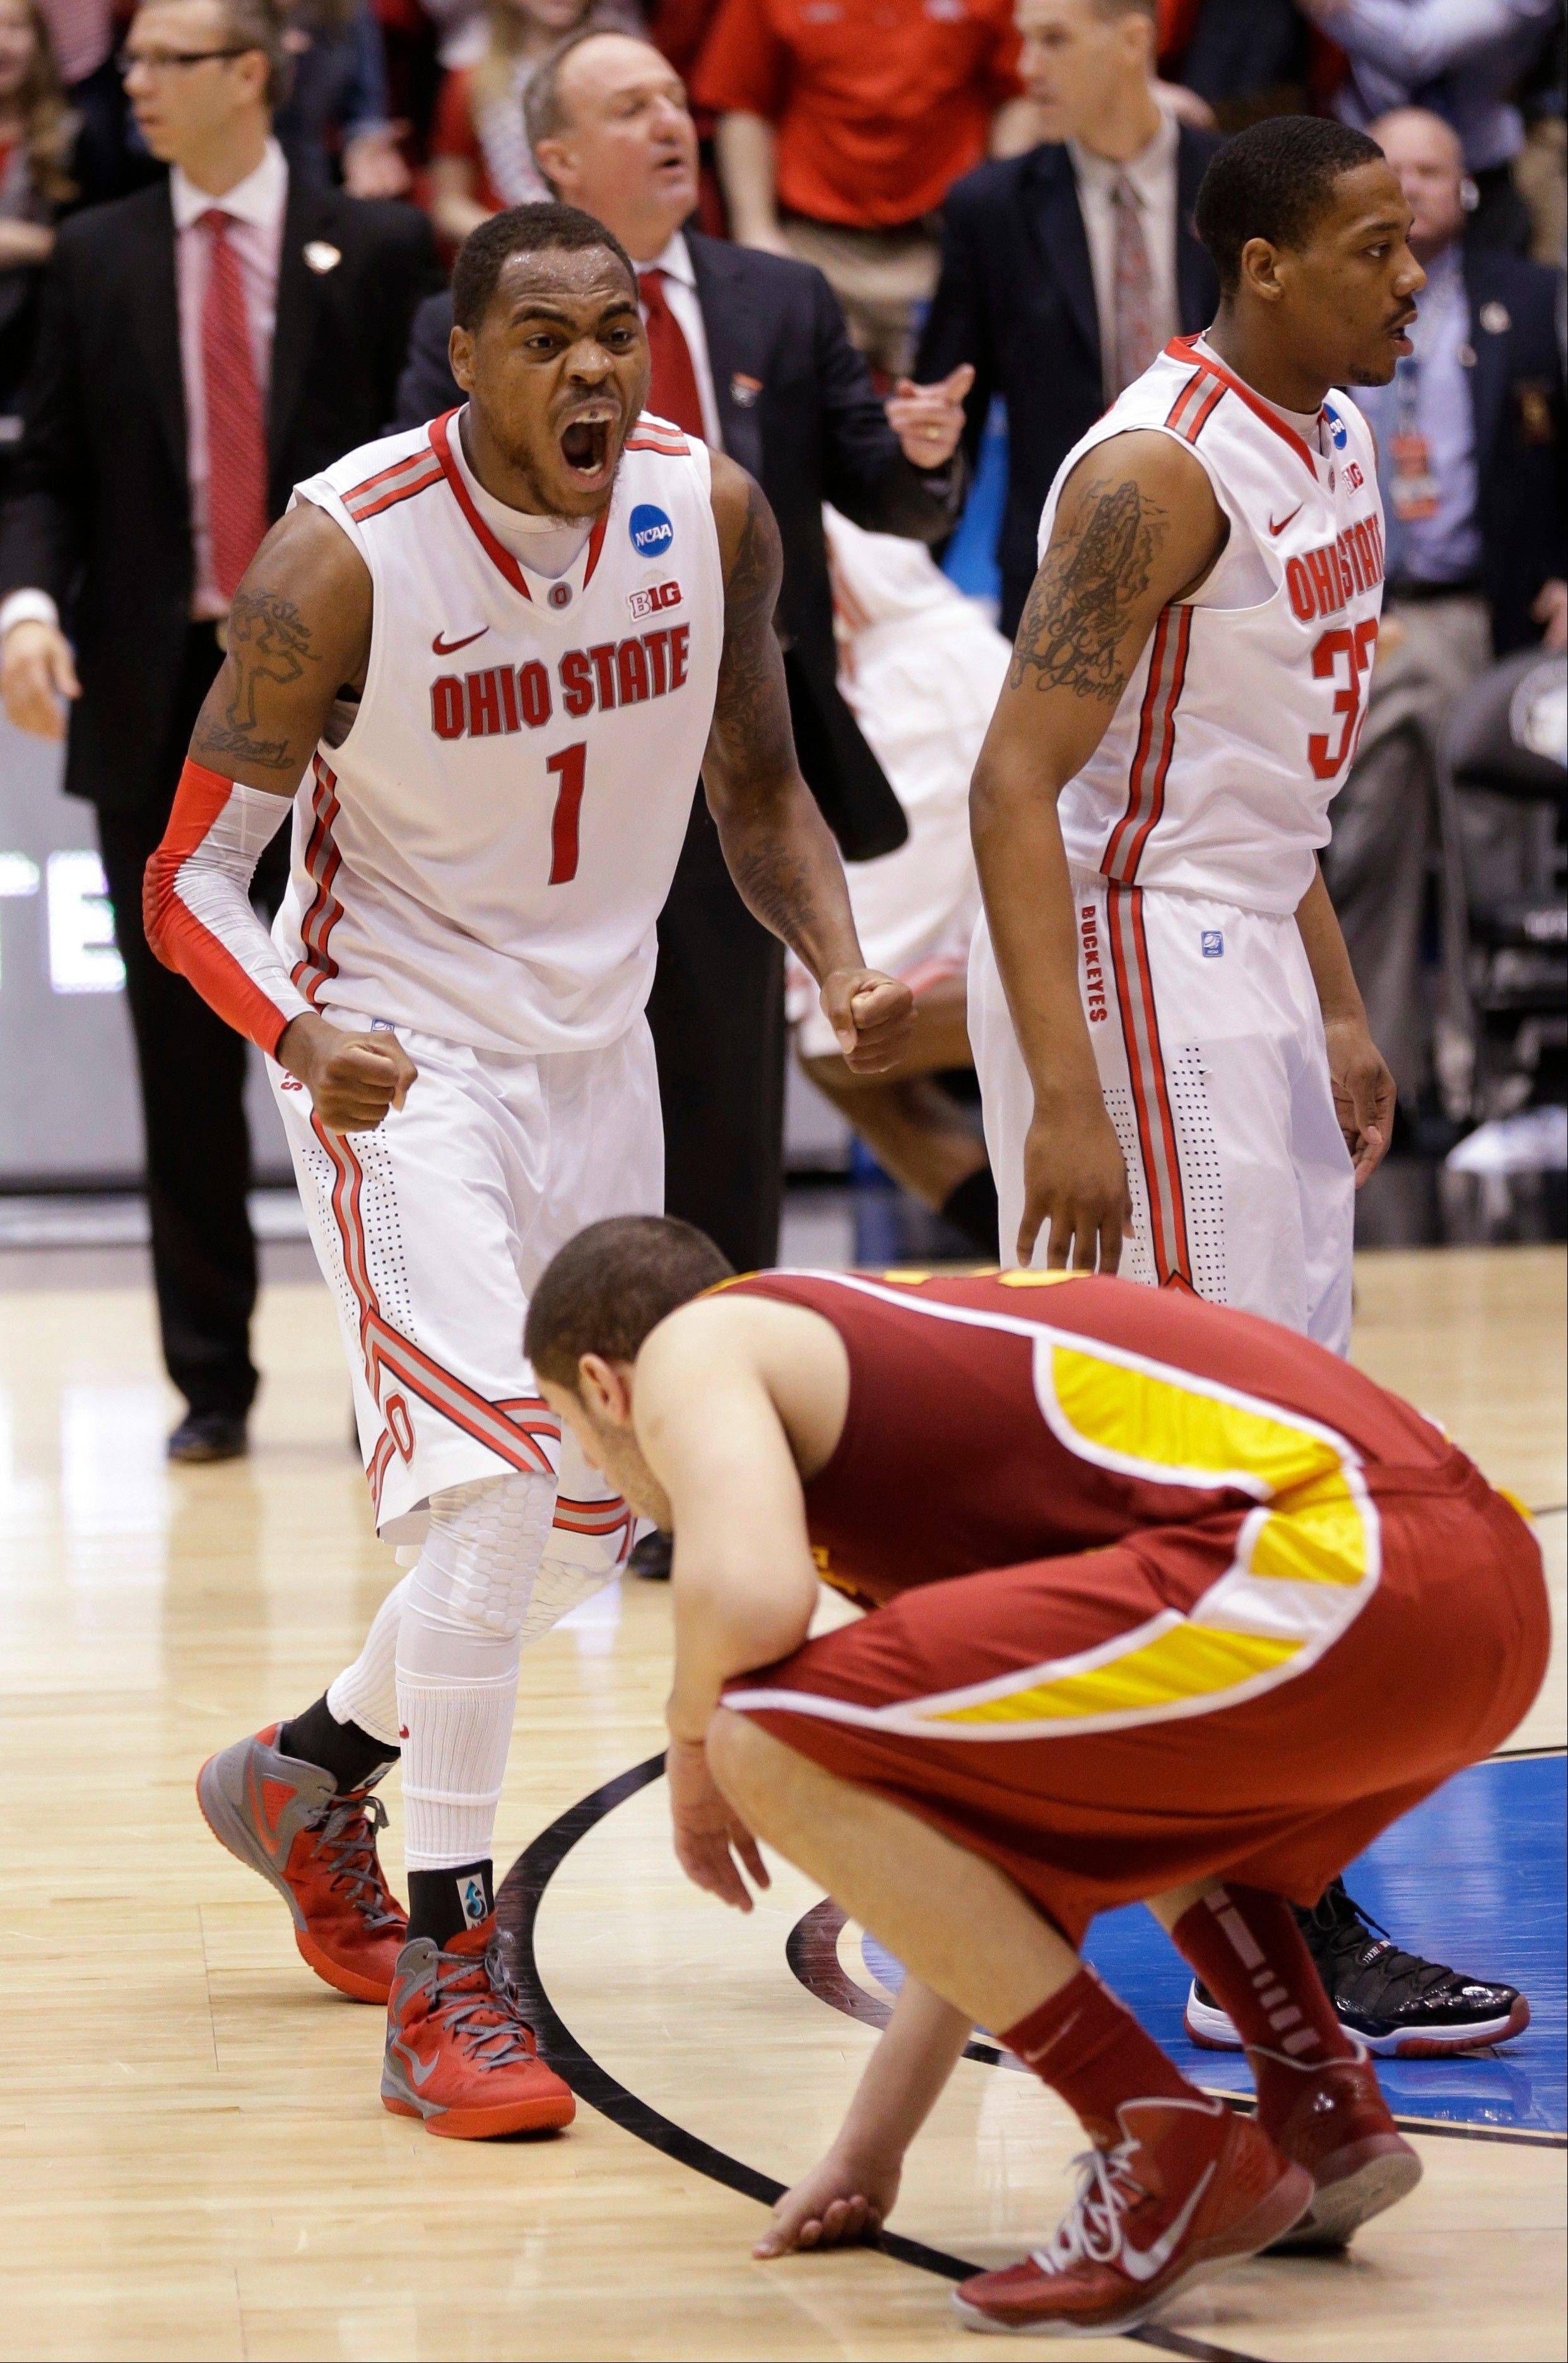 Iowa State forward Georges Niang squats on the floor as Ohio State forward Deshaun Thomas (1) and Lenzelle Smith, Jr. (32) celebrate Sunday in the final moments of Ohio State�s 78-75 win in a third-round game of the NCAA tournament in Dayton, Ohio.